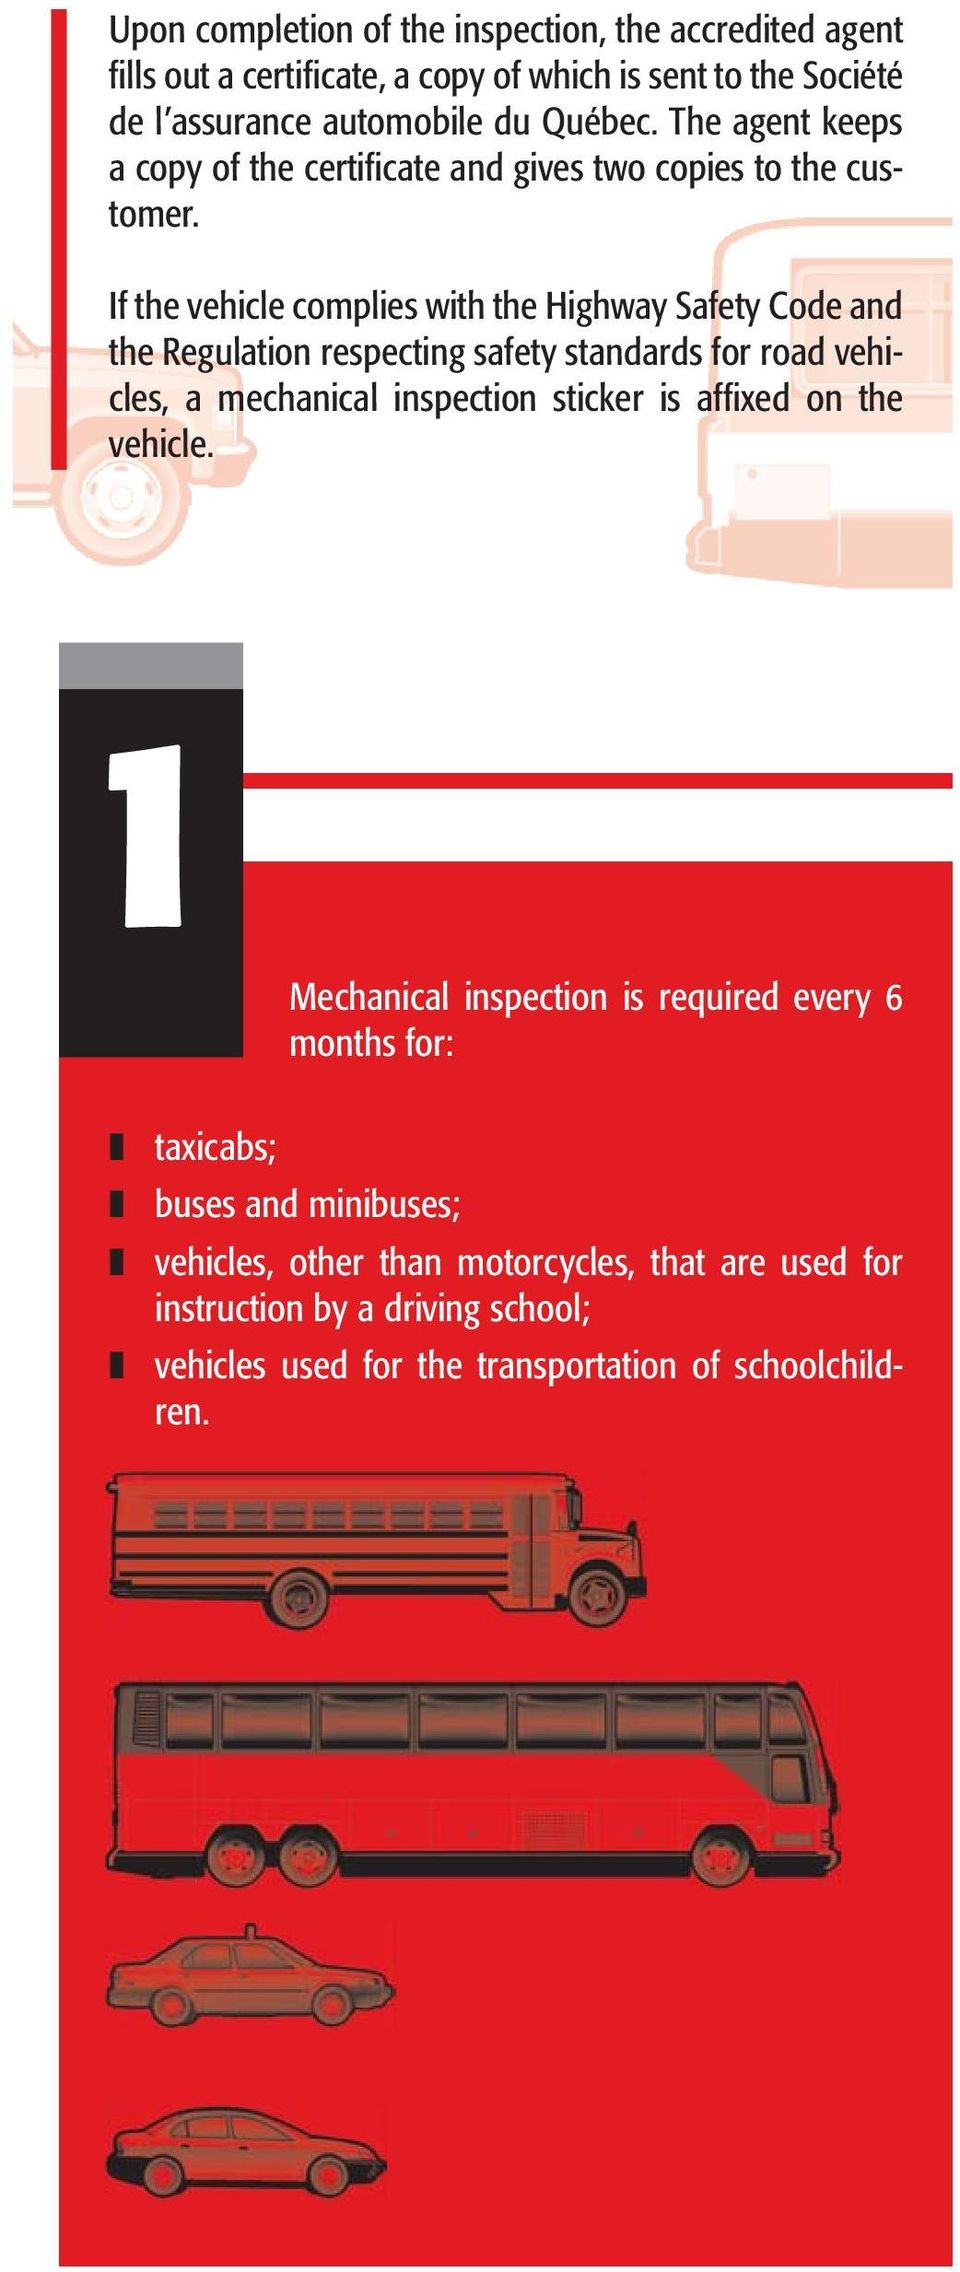 If the vehicle complies with the Highway Safety Code and the Regulation respecting safety standards for road vehicles, a mechanical inspection sticker is